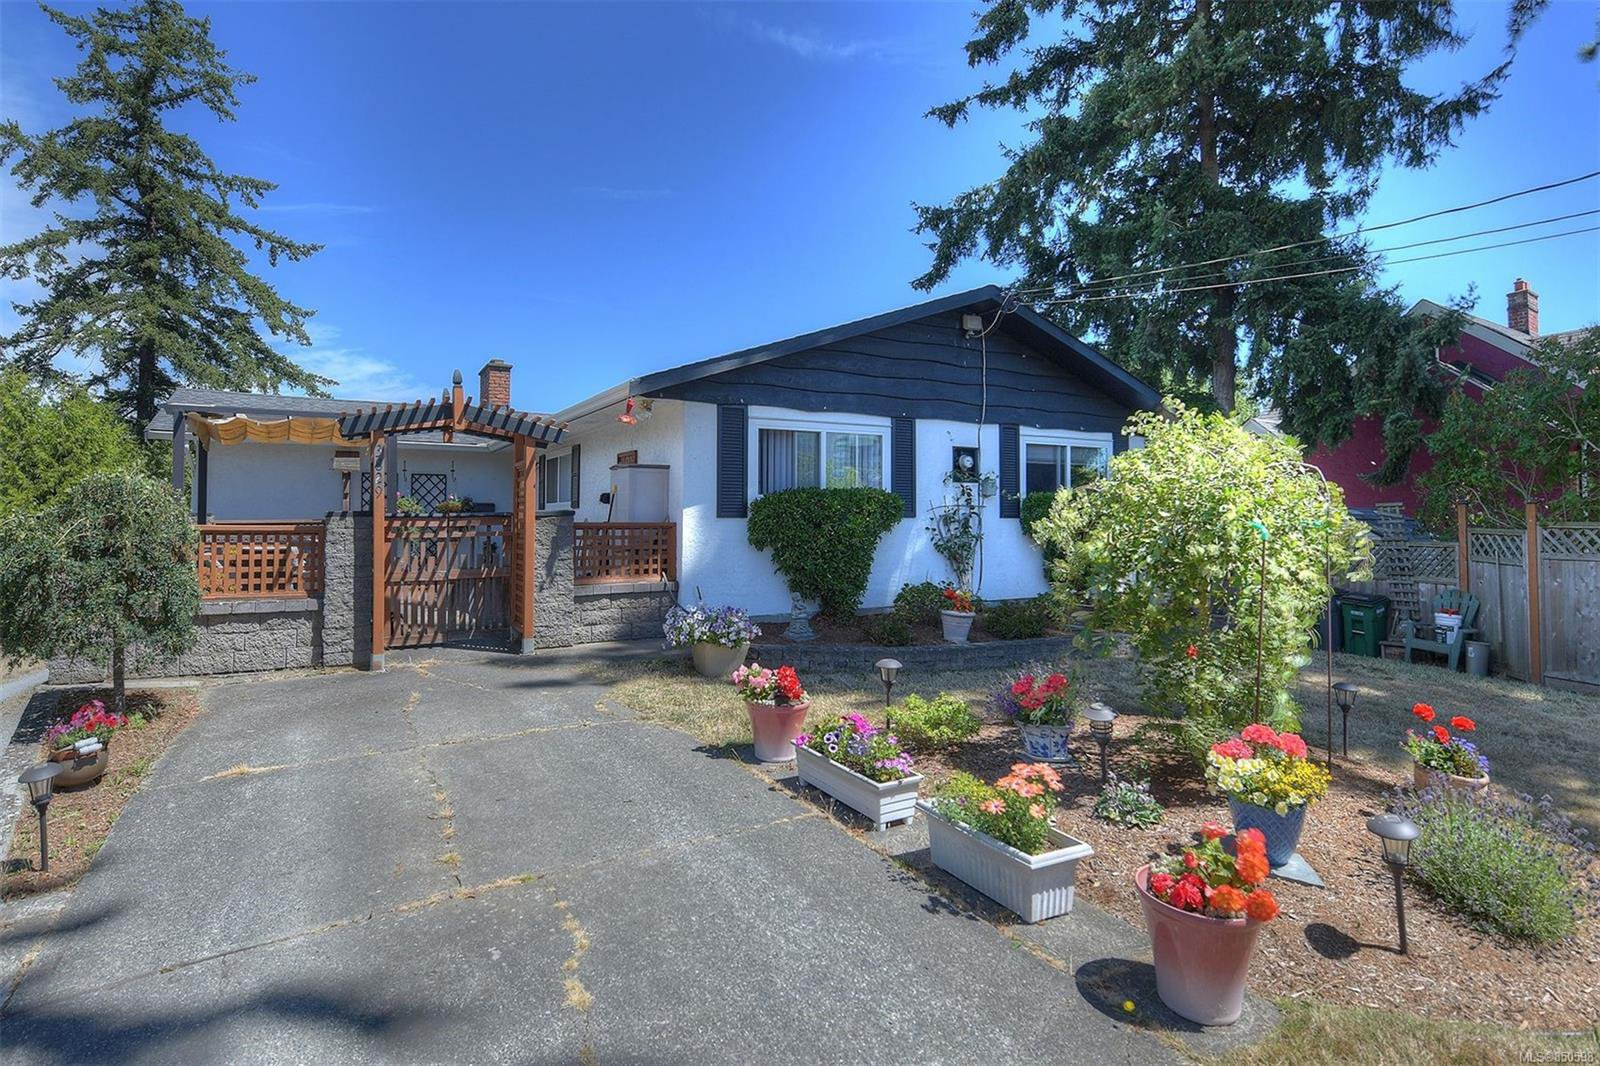 Main Photo: 3829 Rowland Ave in : SW Tillicum Single Family Detached for sale (Saanich West)  : MLS®# 850598